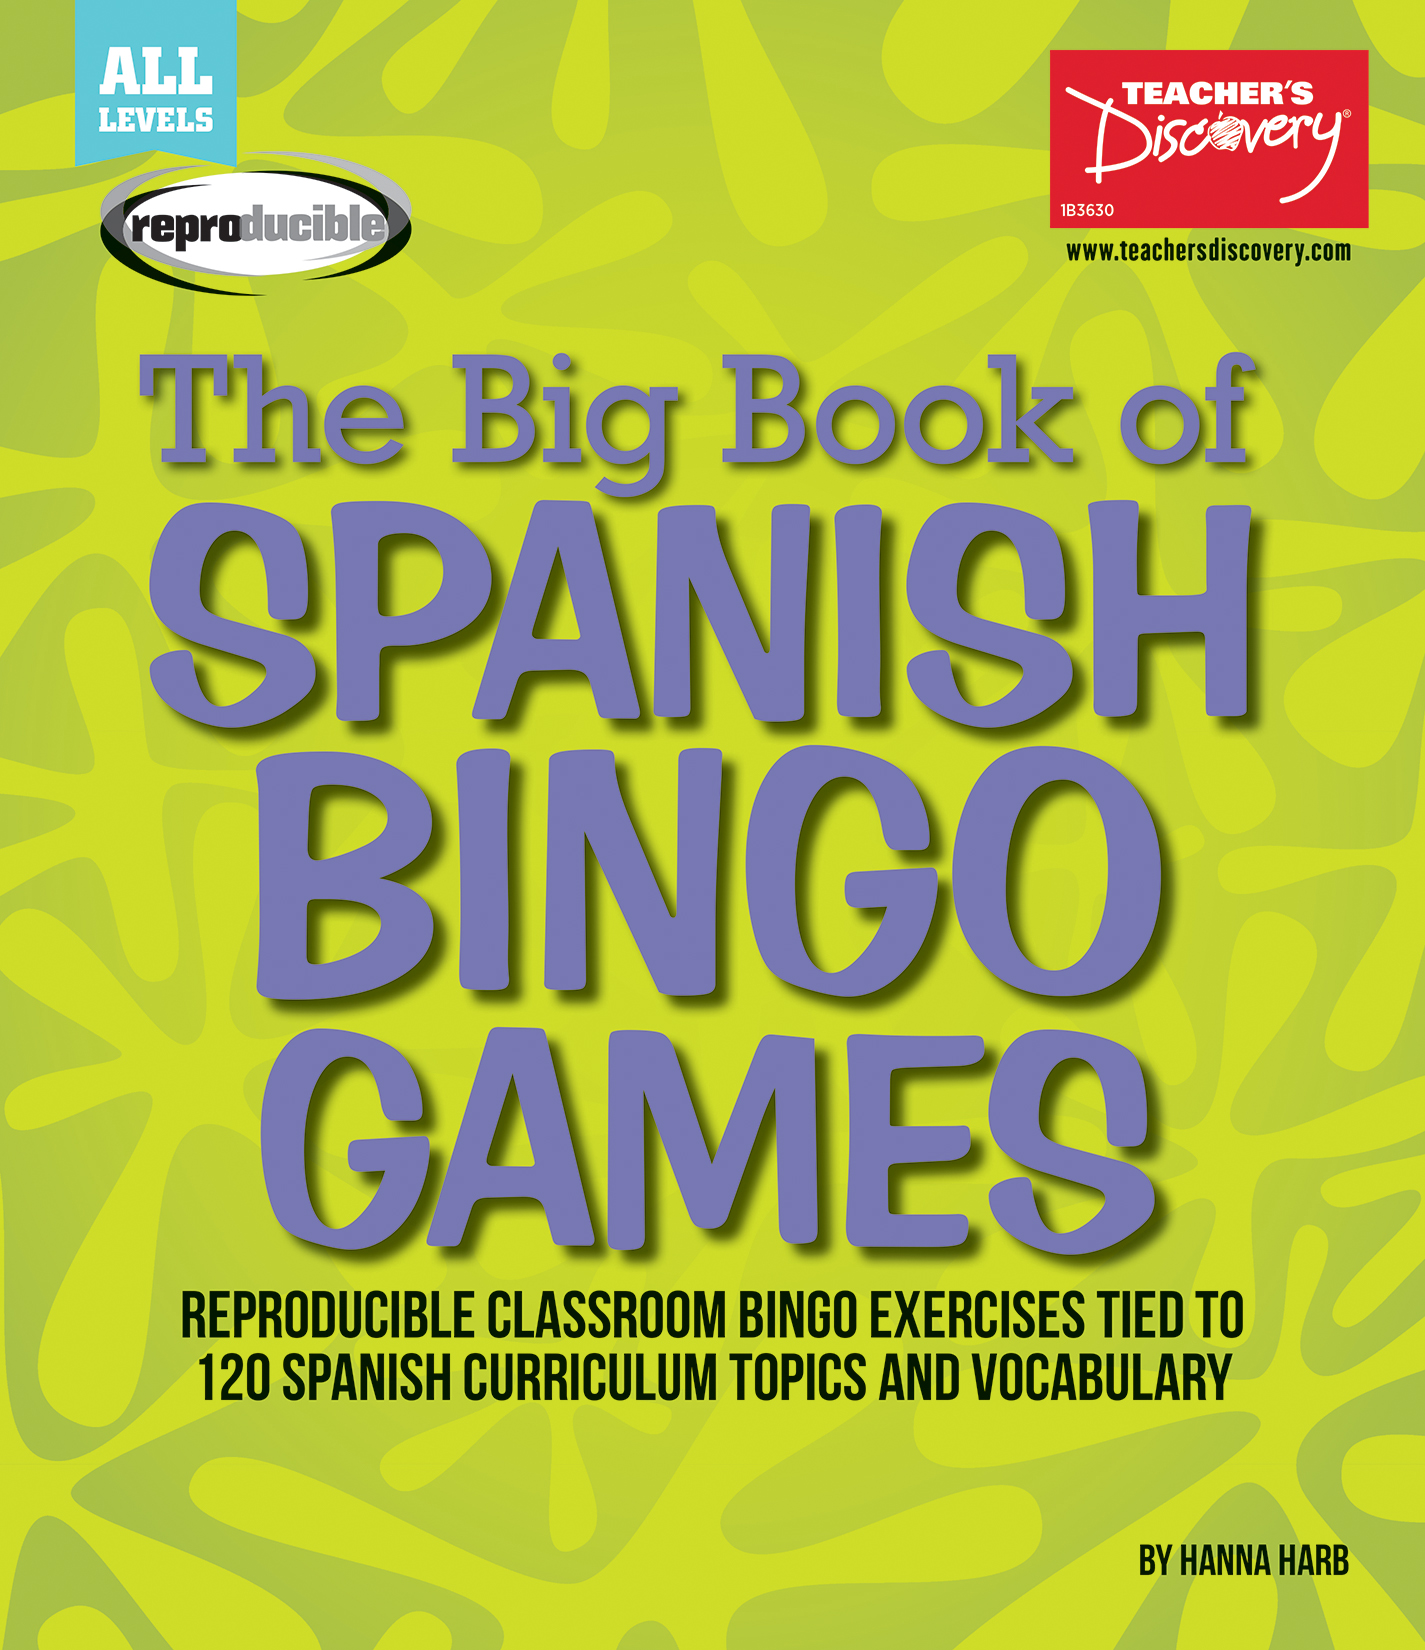 The Big Book of Spanish Bingo Games